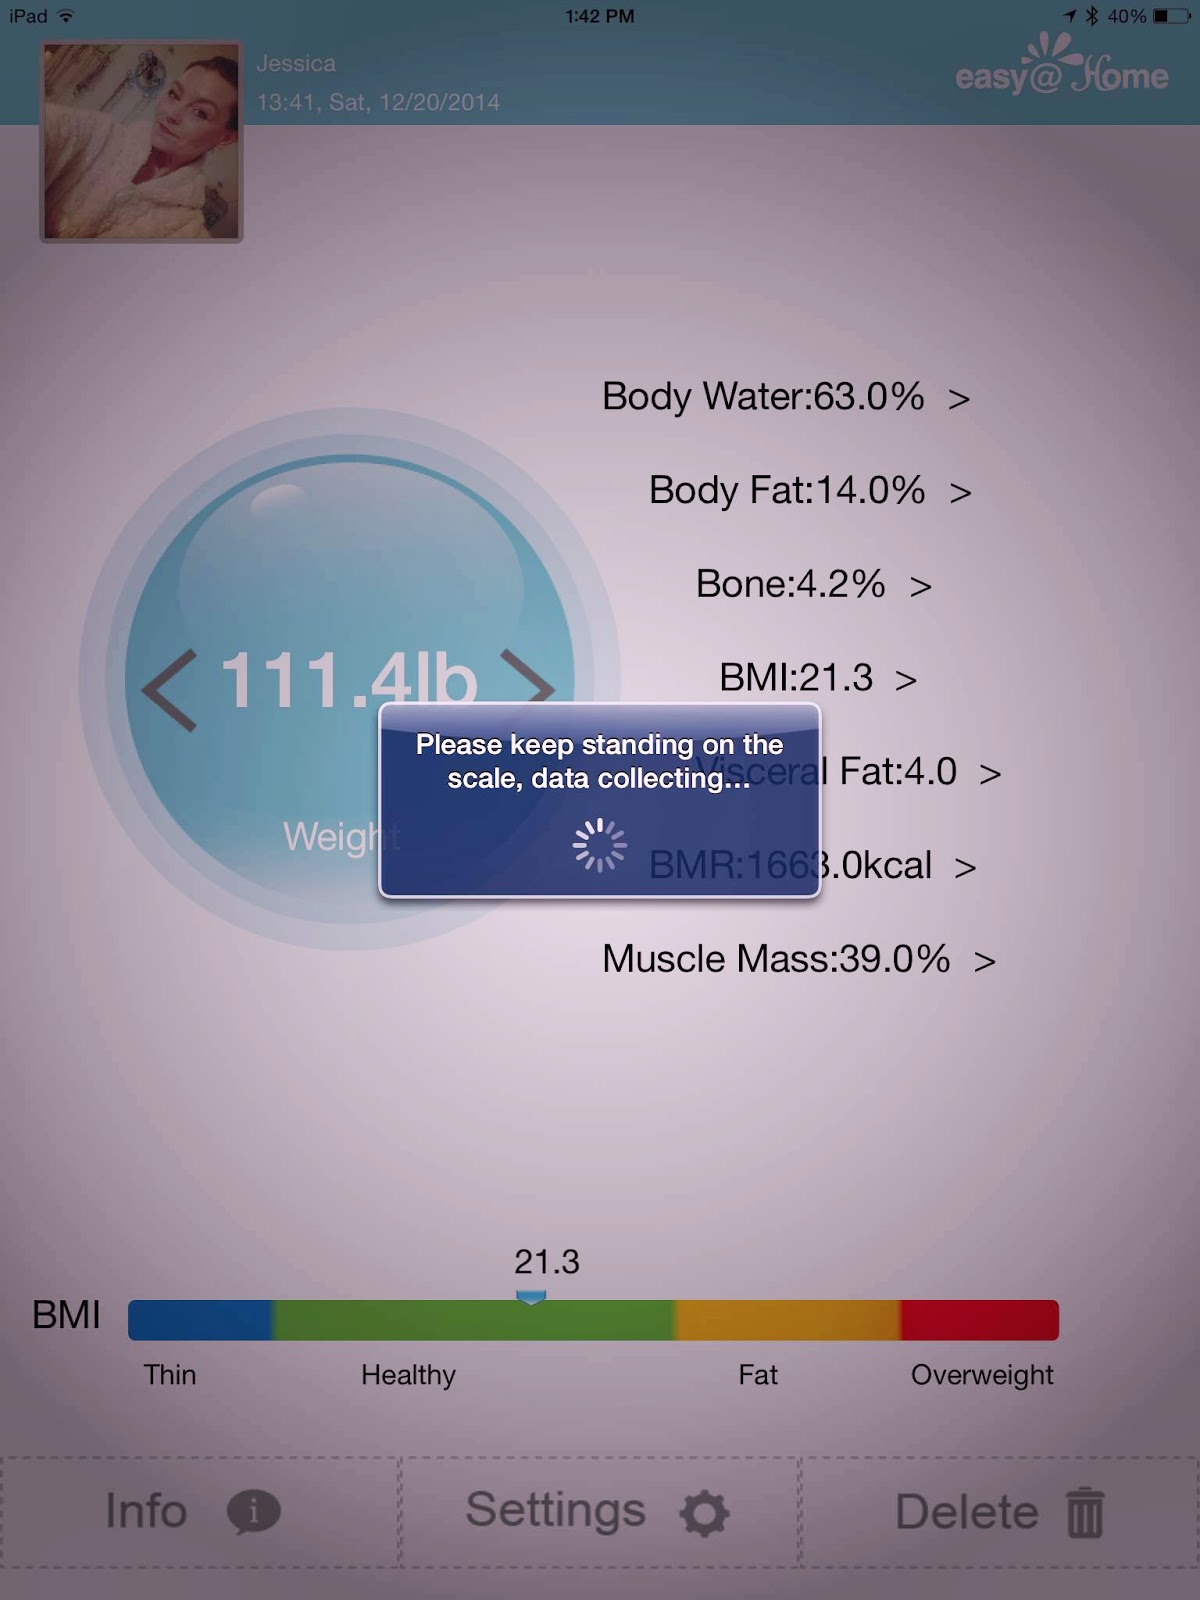 EasyHomeScale App Syncing